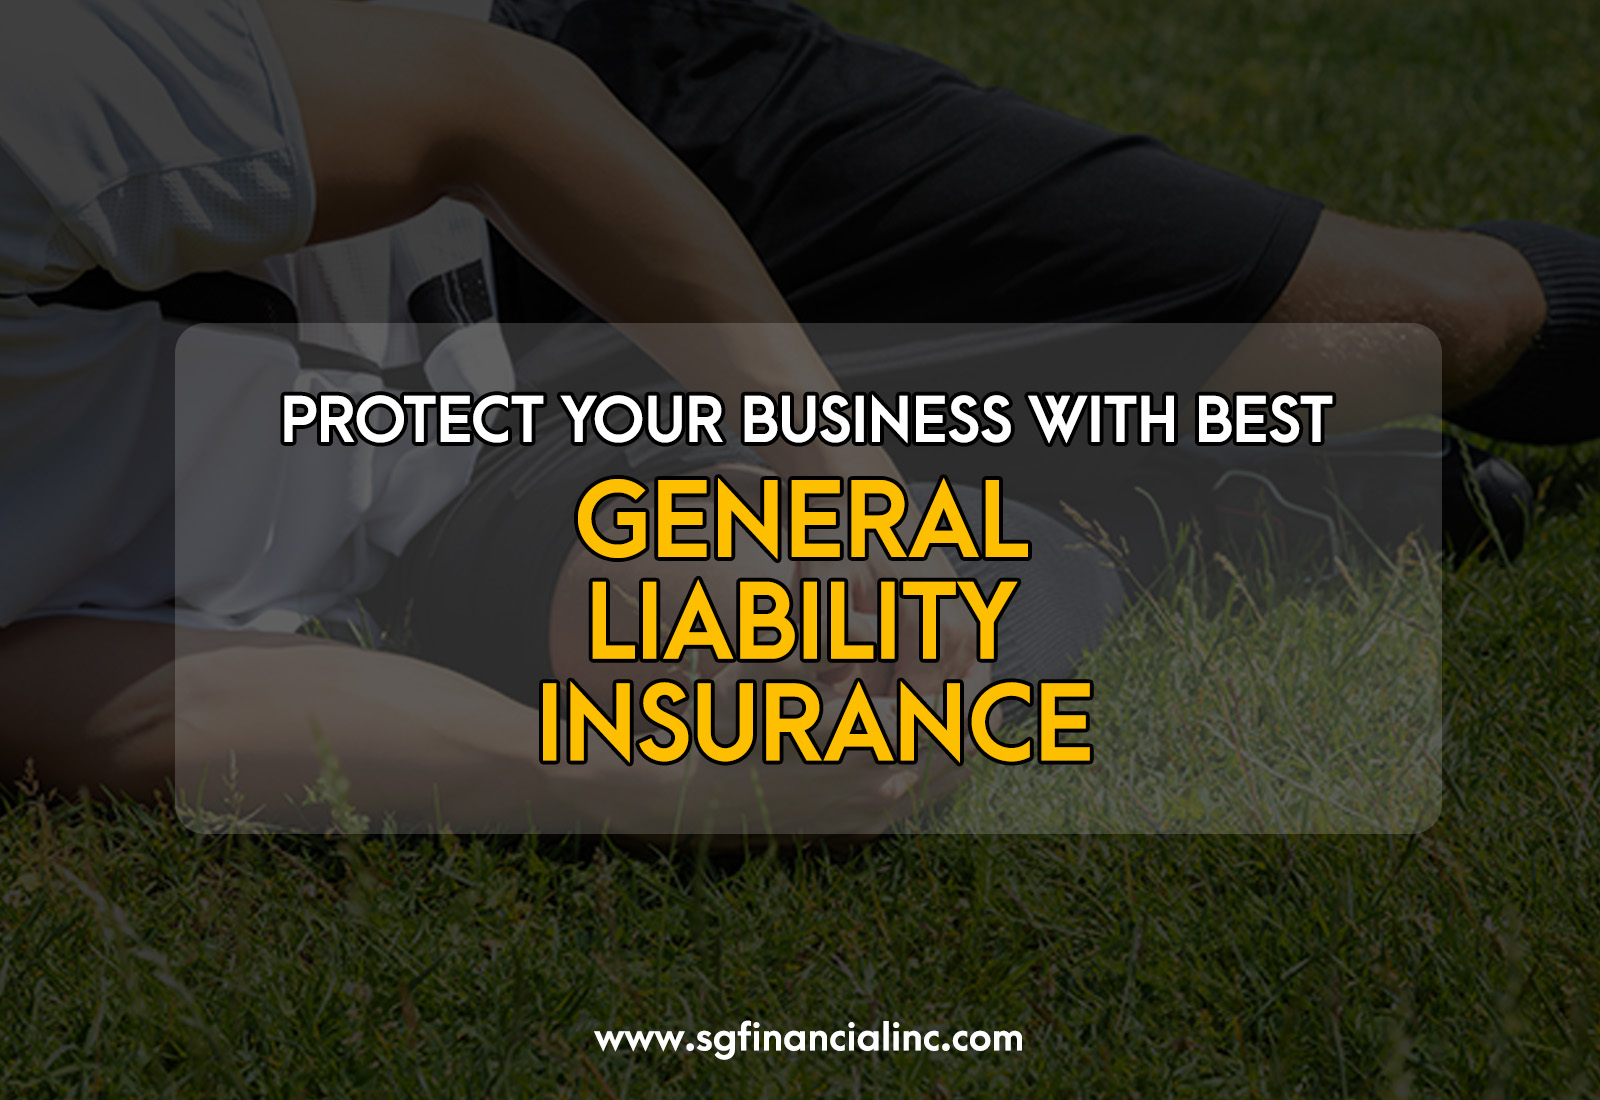 Protect Your Business with Best General Liability Insurance